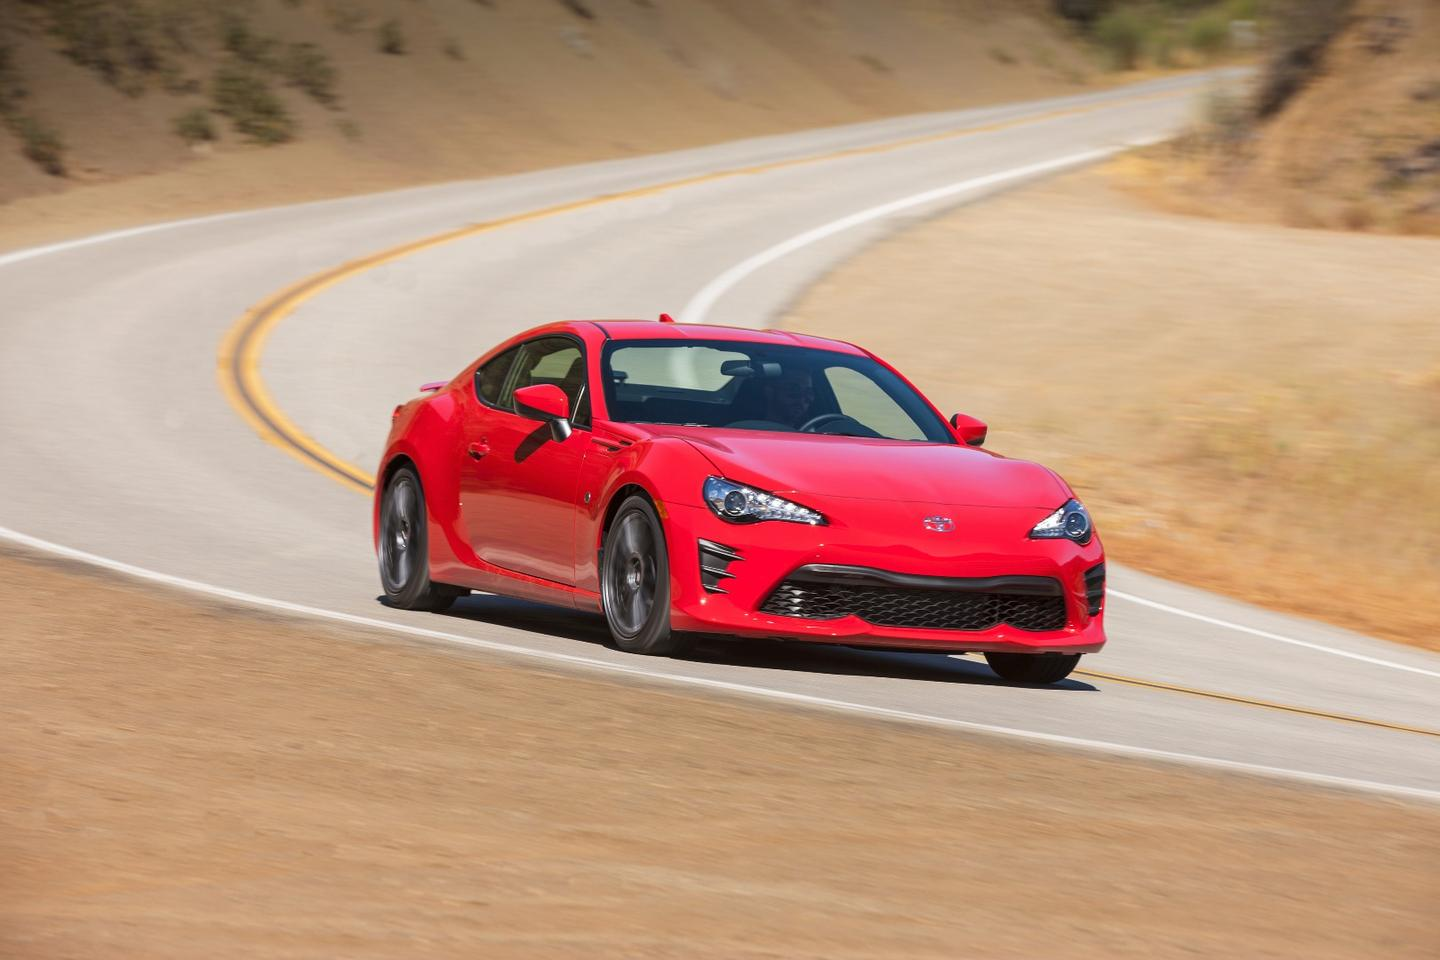 The 2017 Toyota 86 is both a good everyday driver with a fun demeanor as well as a good first-timer's sports coupe